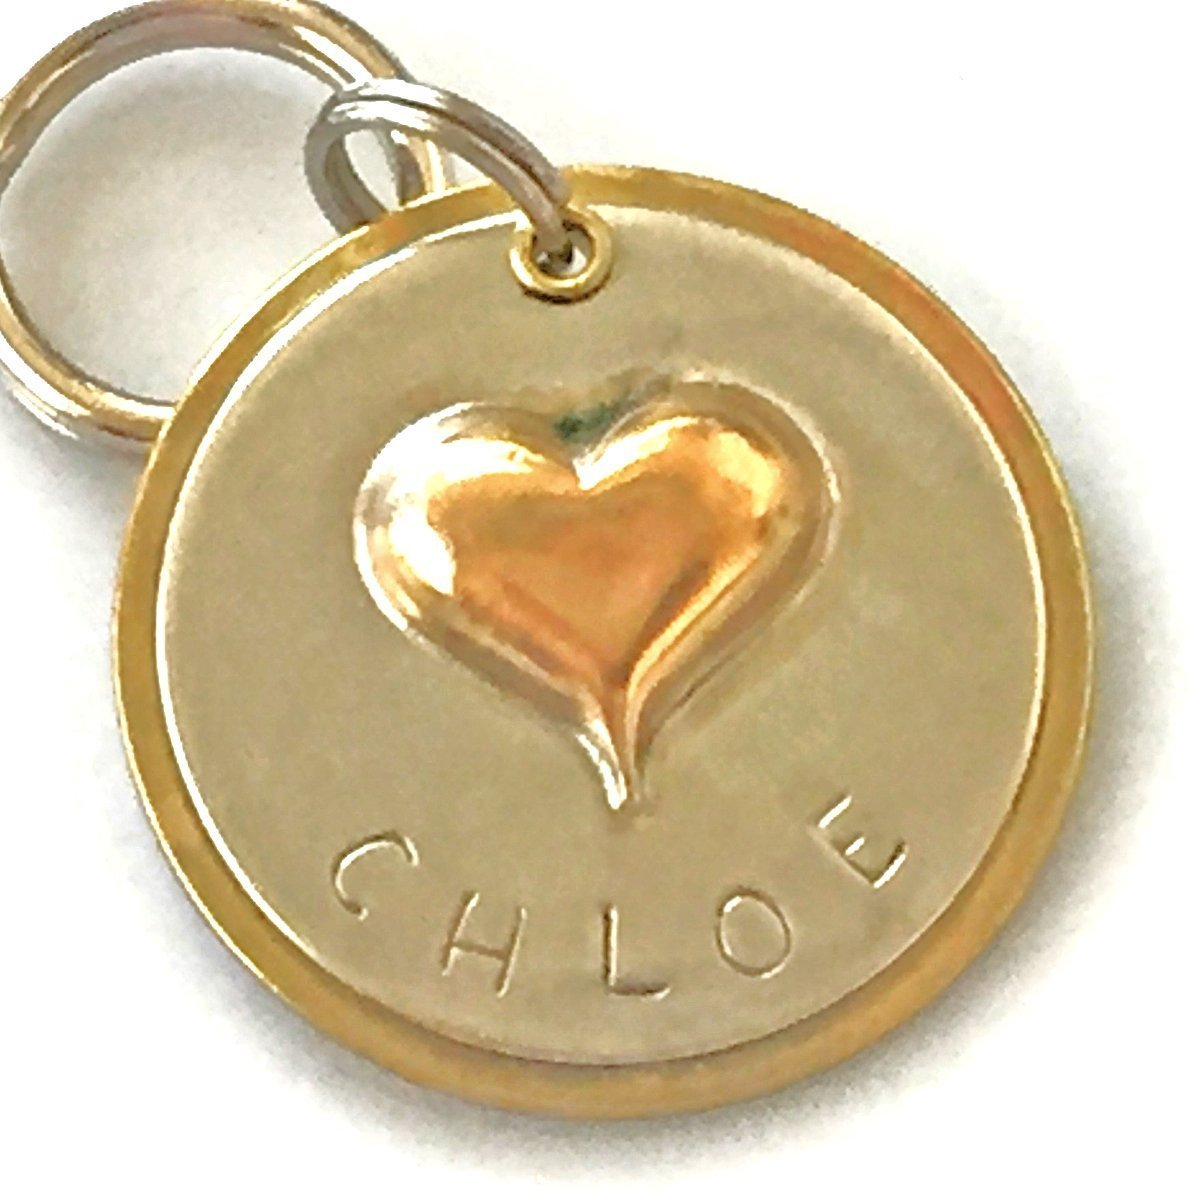 Personalized Pet ID Tag - Chloe - Puffy Heart